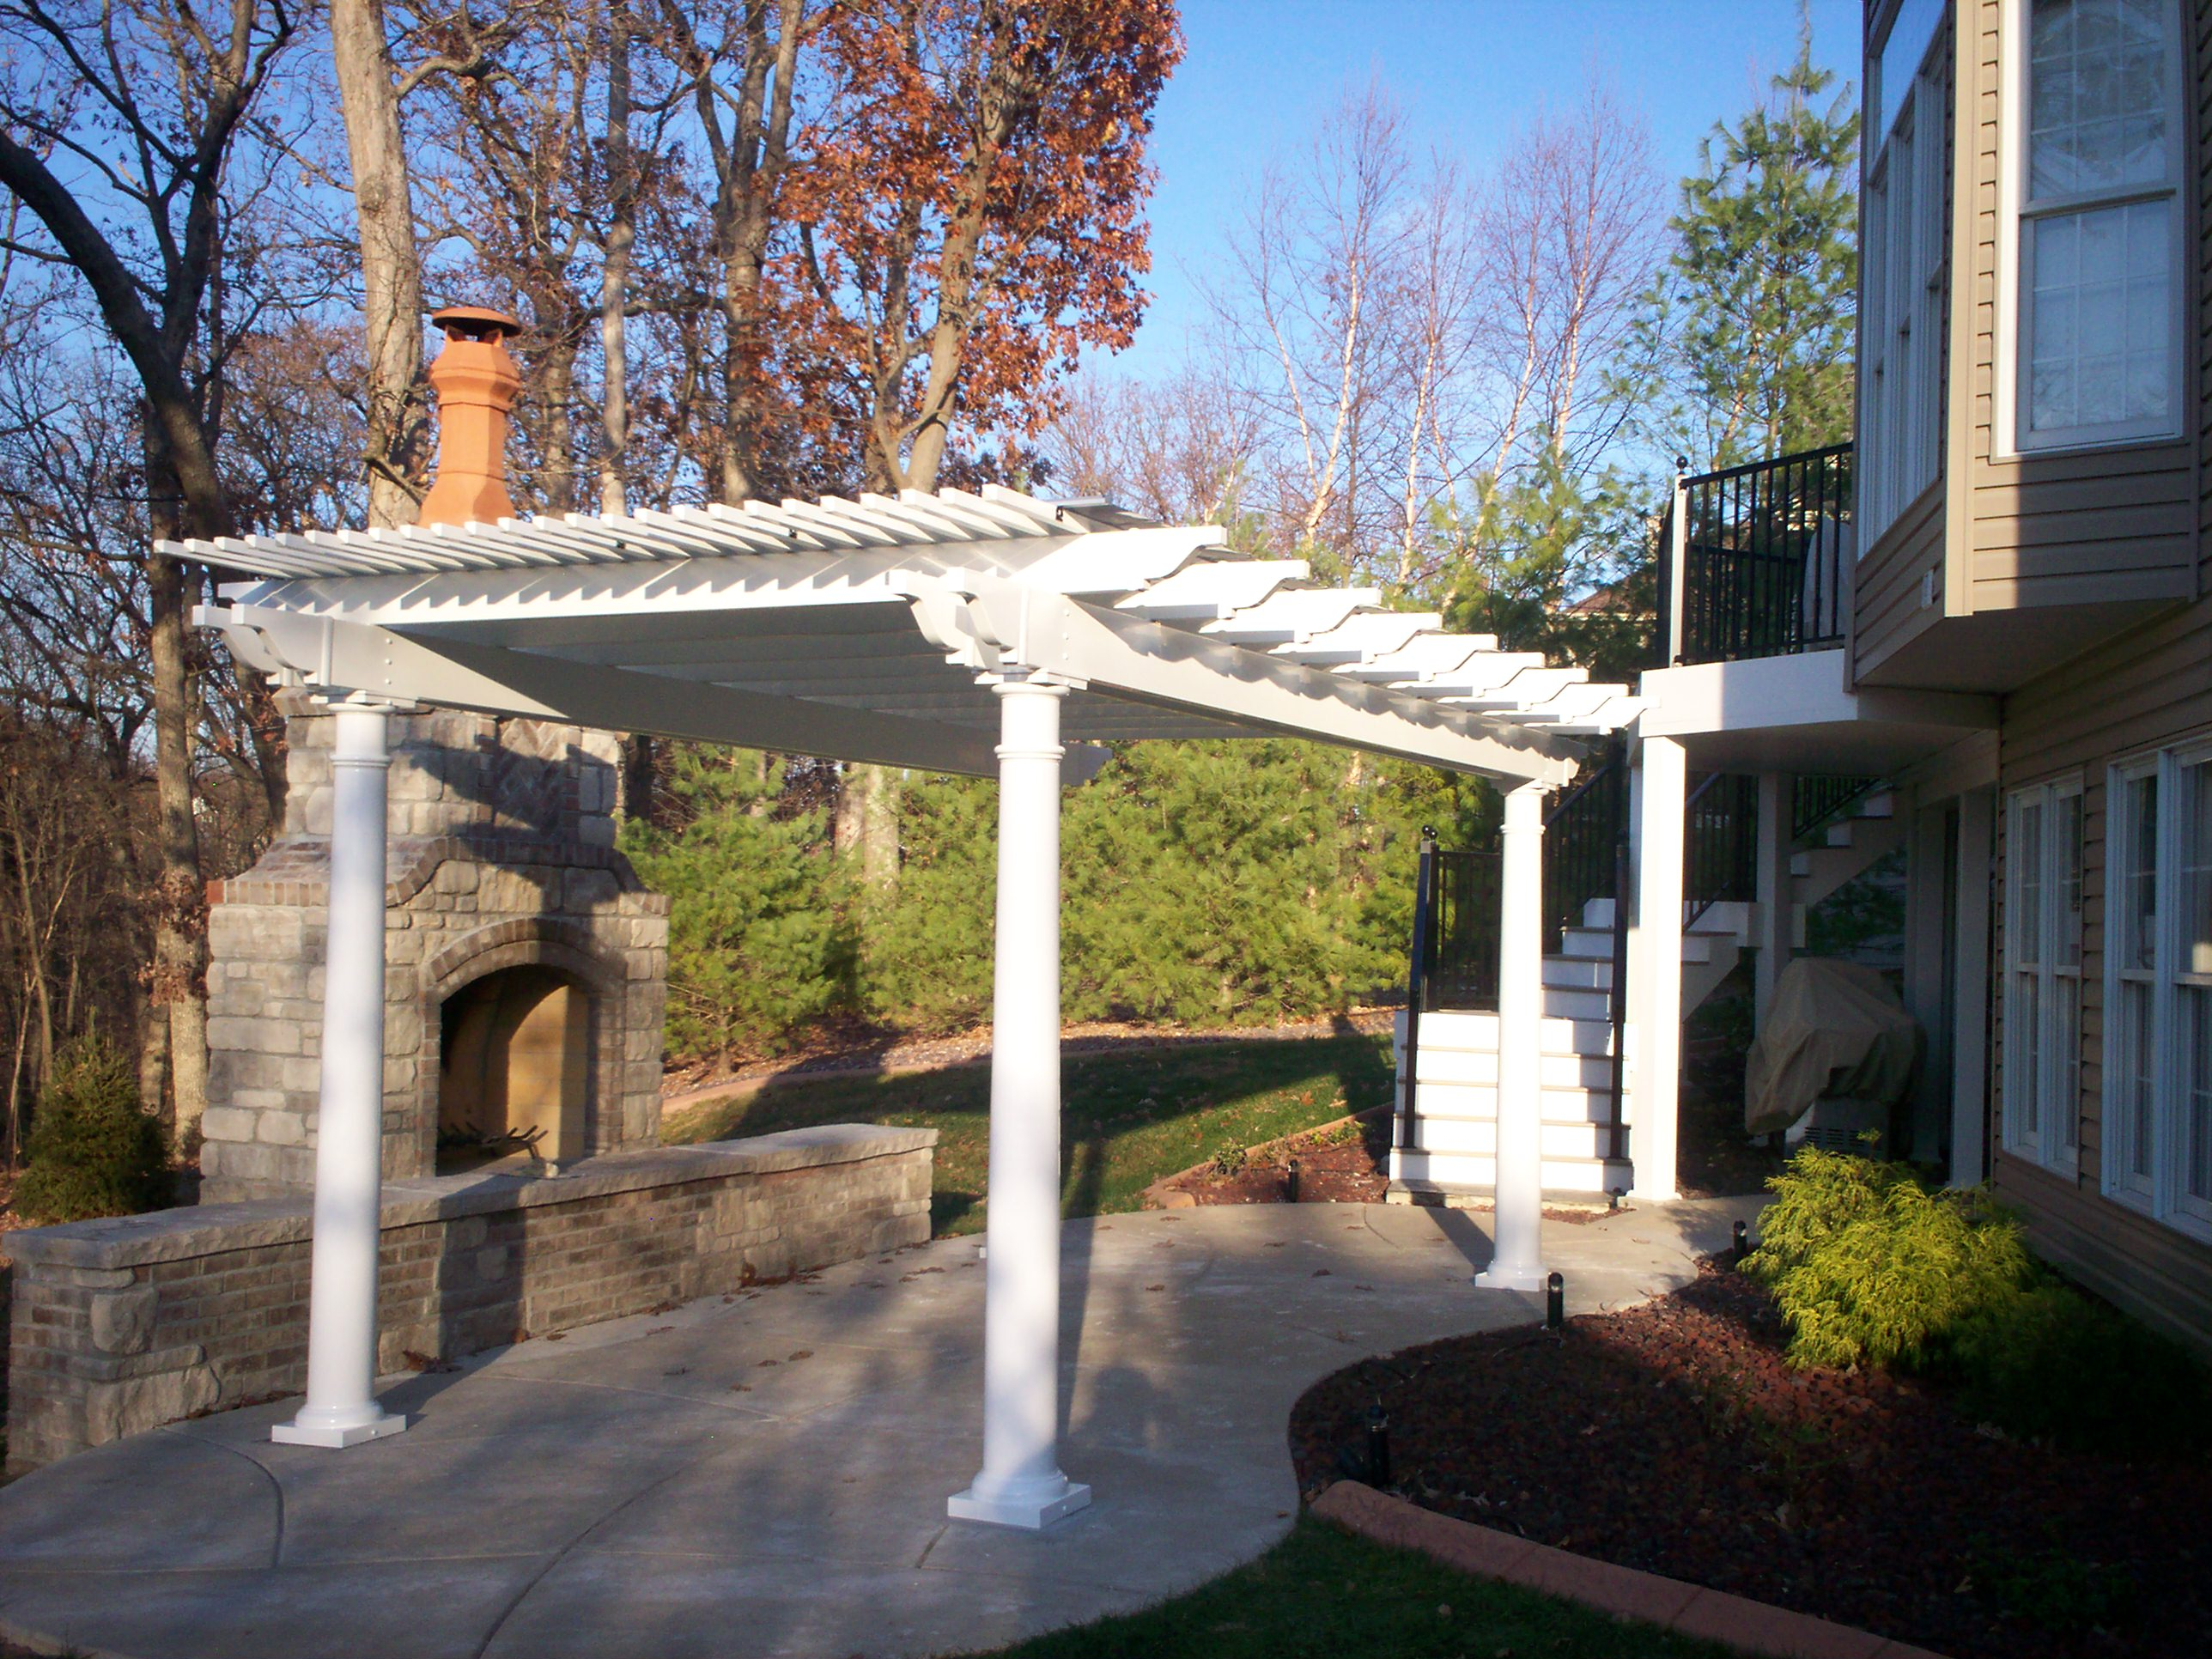 Outdoor Living Room Design Home Plans With Great Outdoor Living Spaces Top Outdoor Living